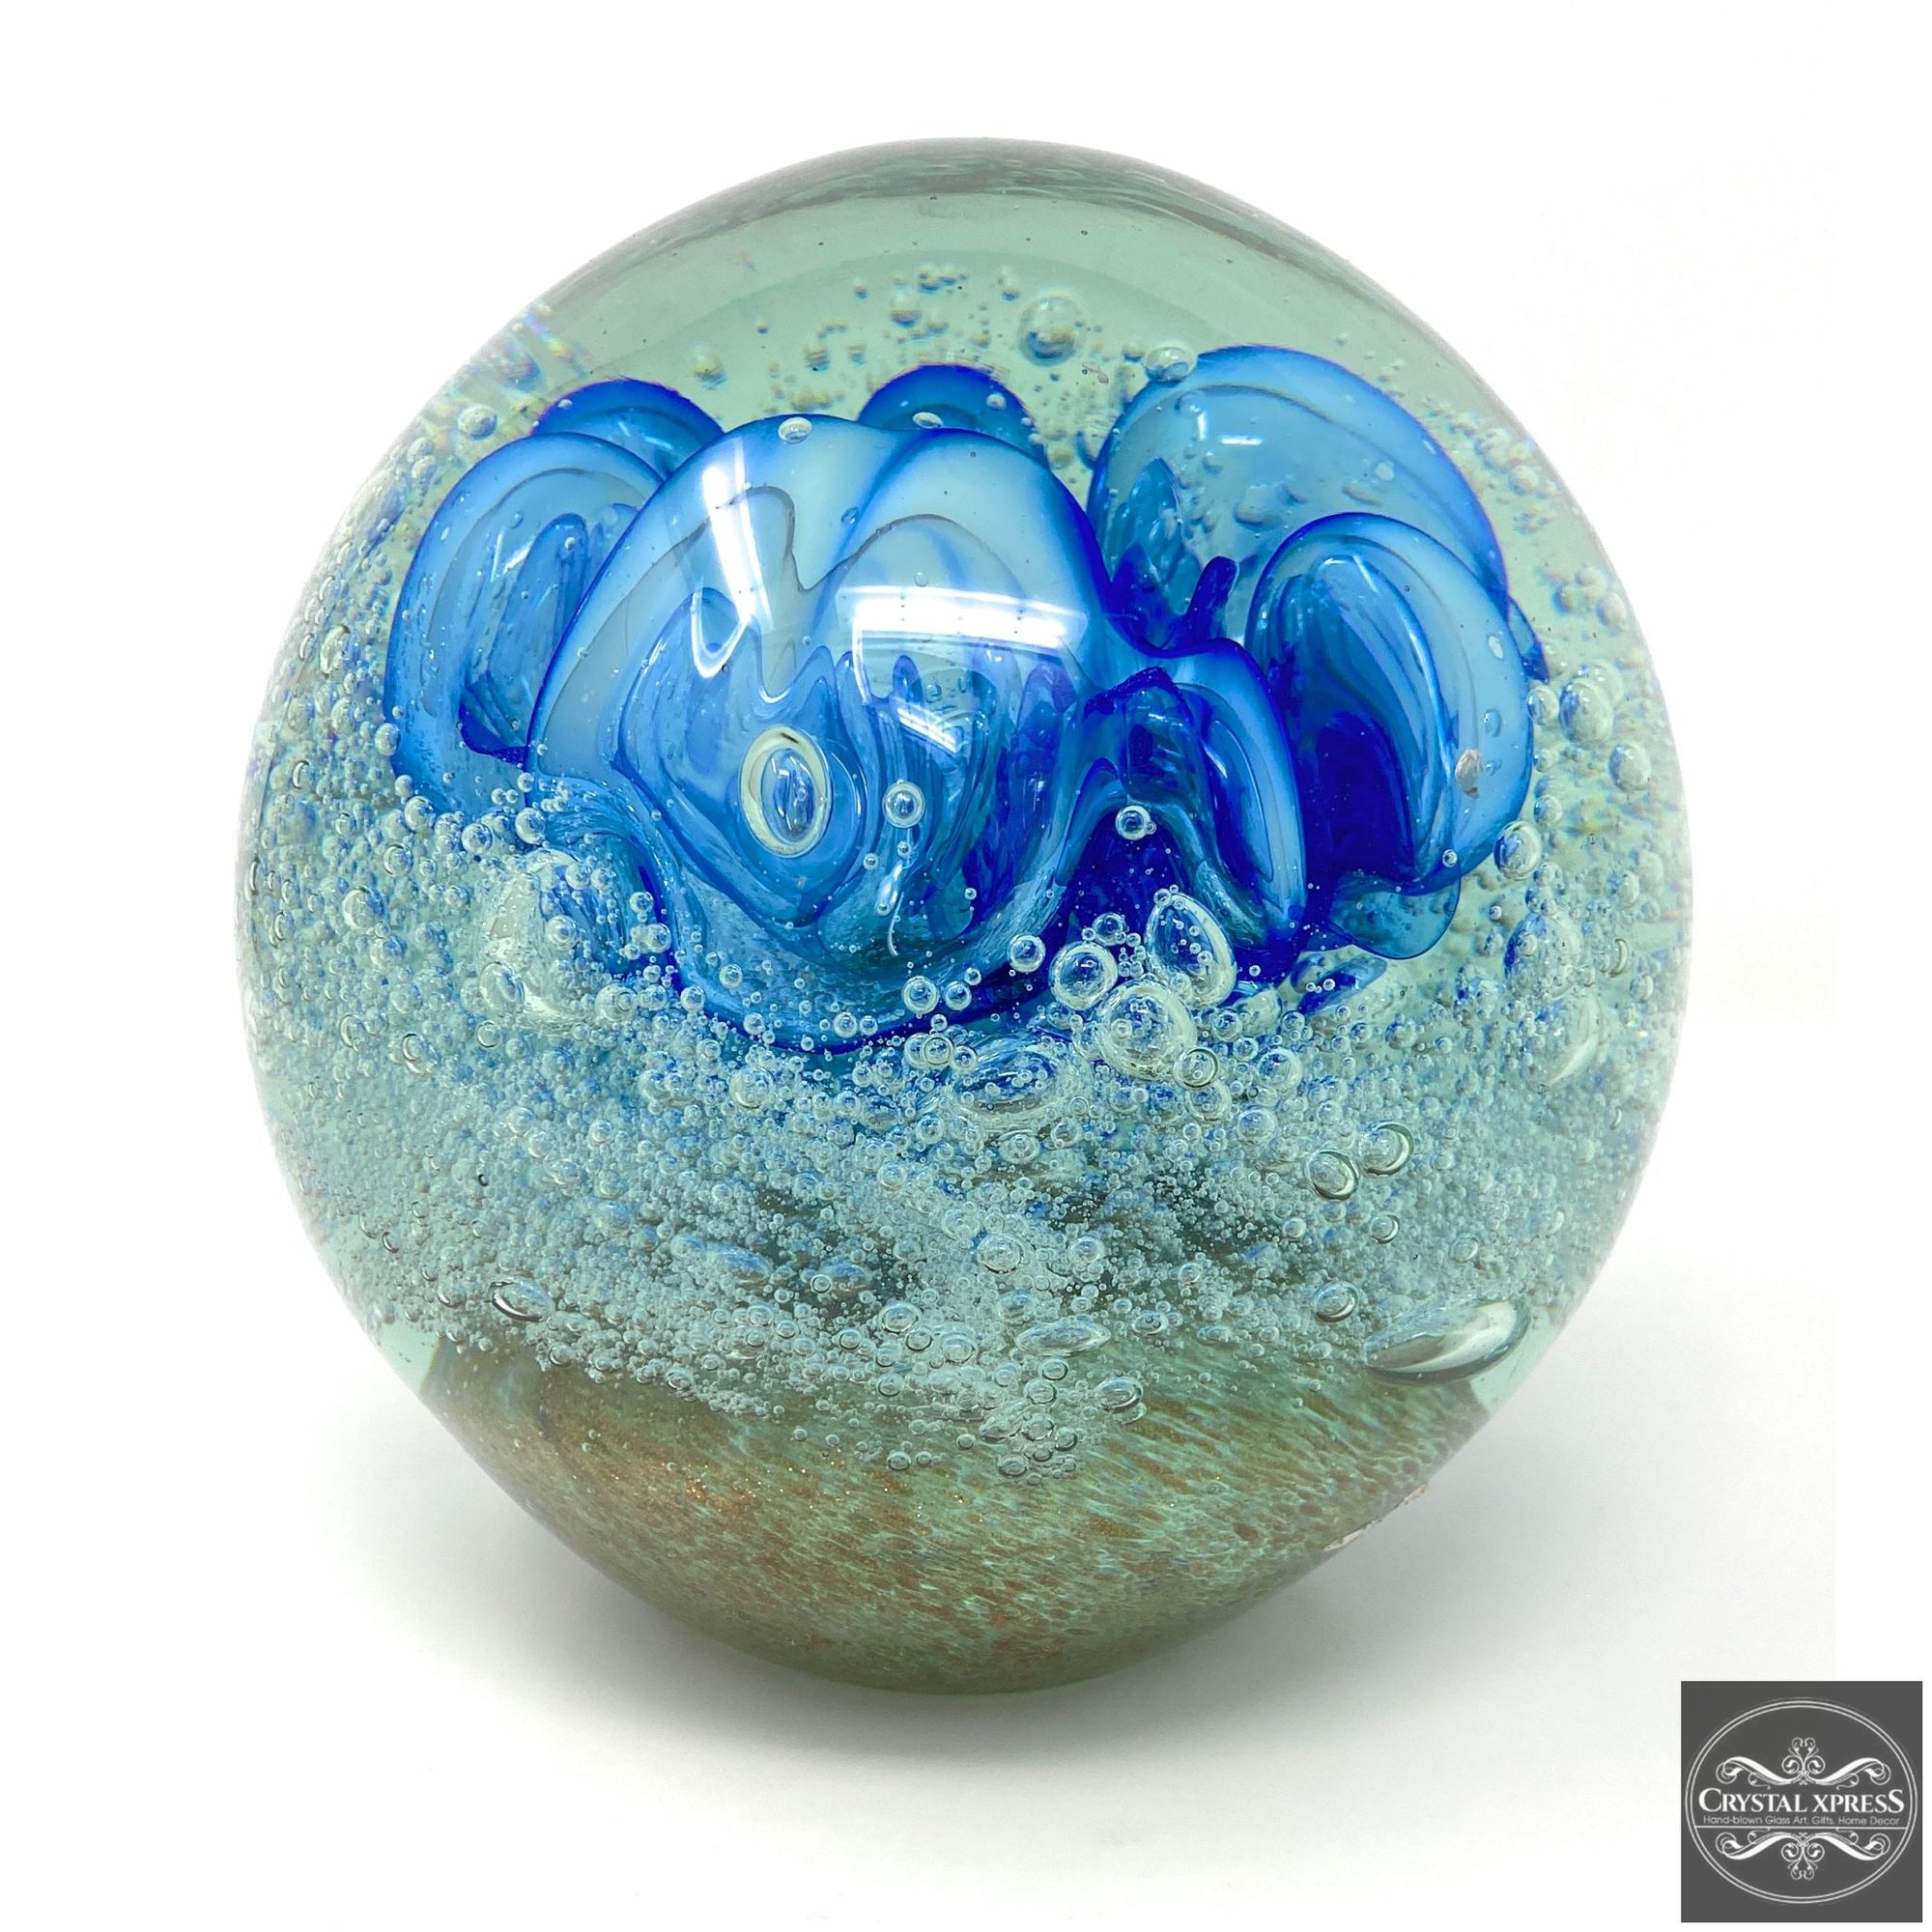 Glass Paperweight with Blue Flower 7 inch DiameterCrystal Xpress